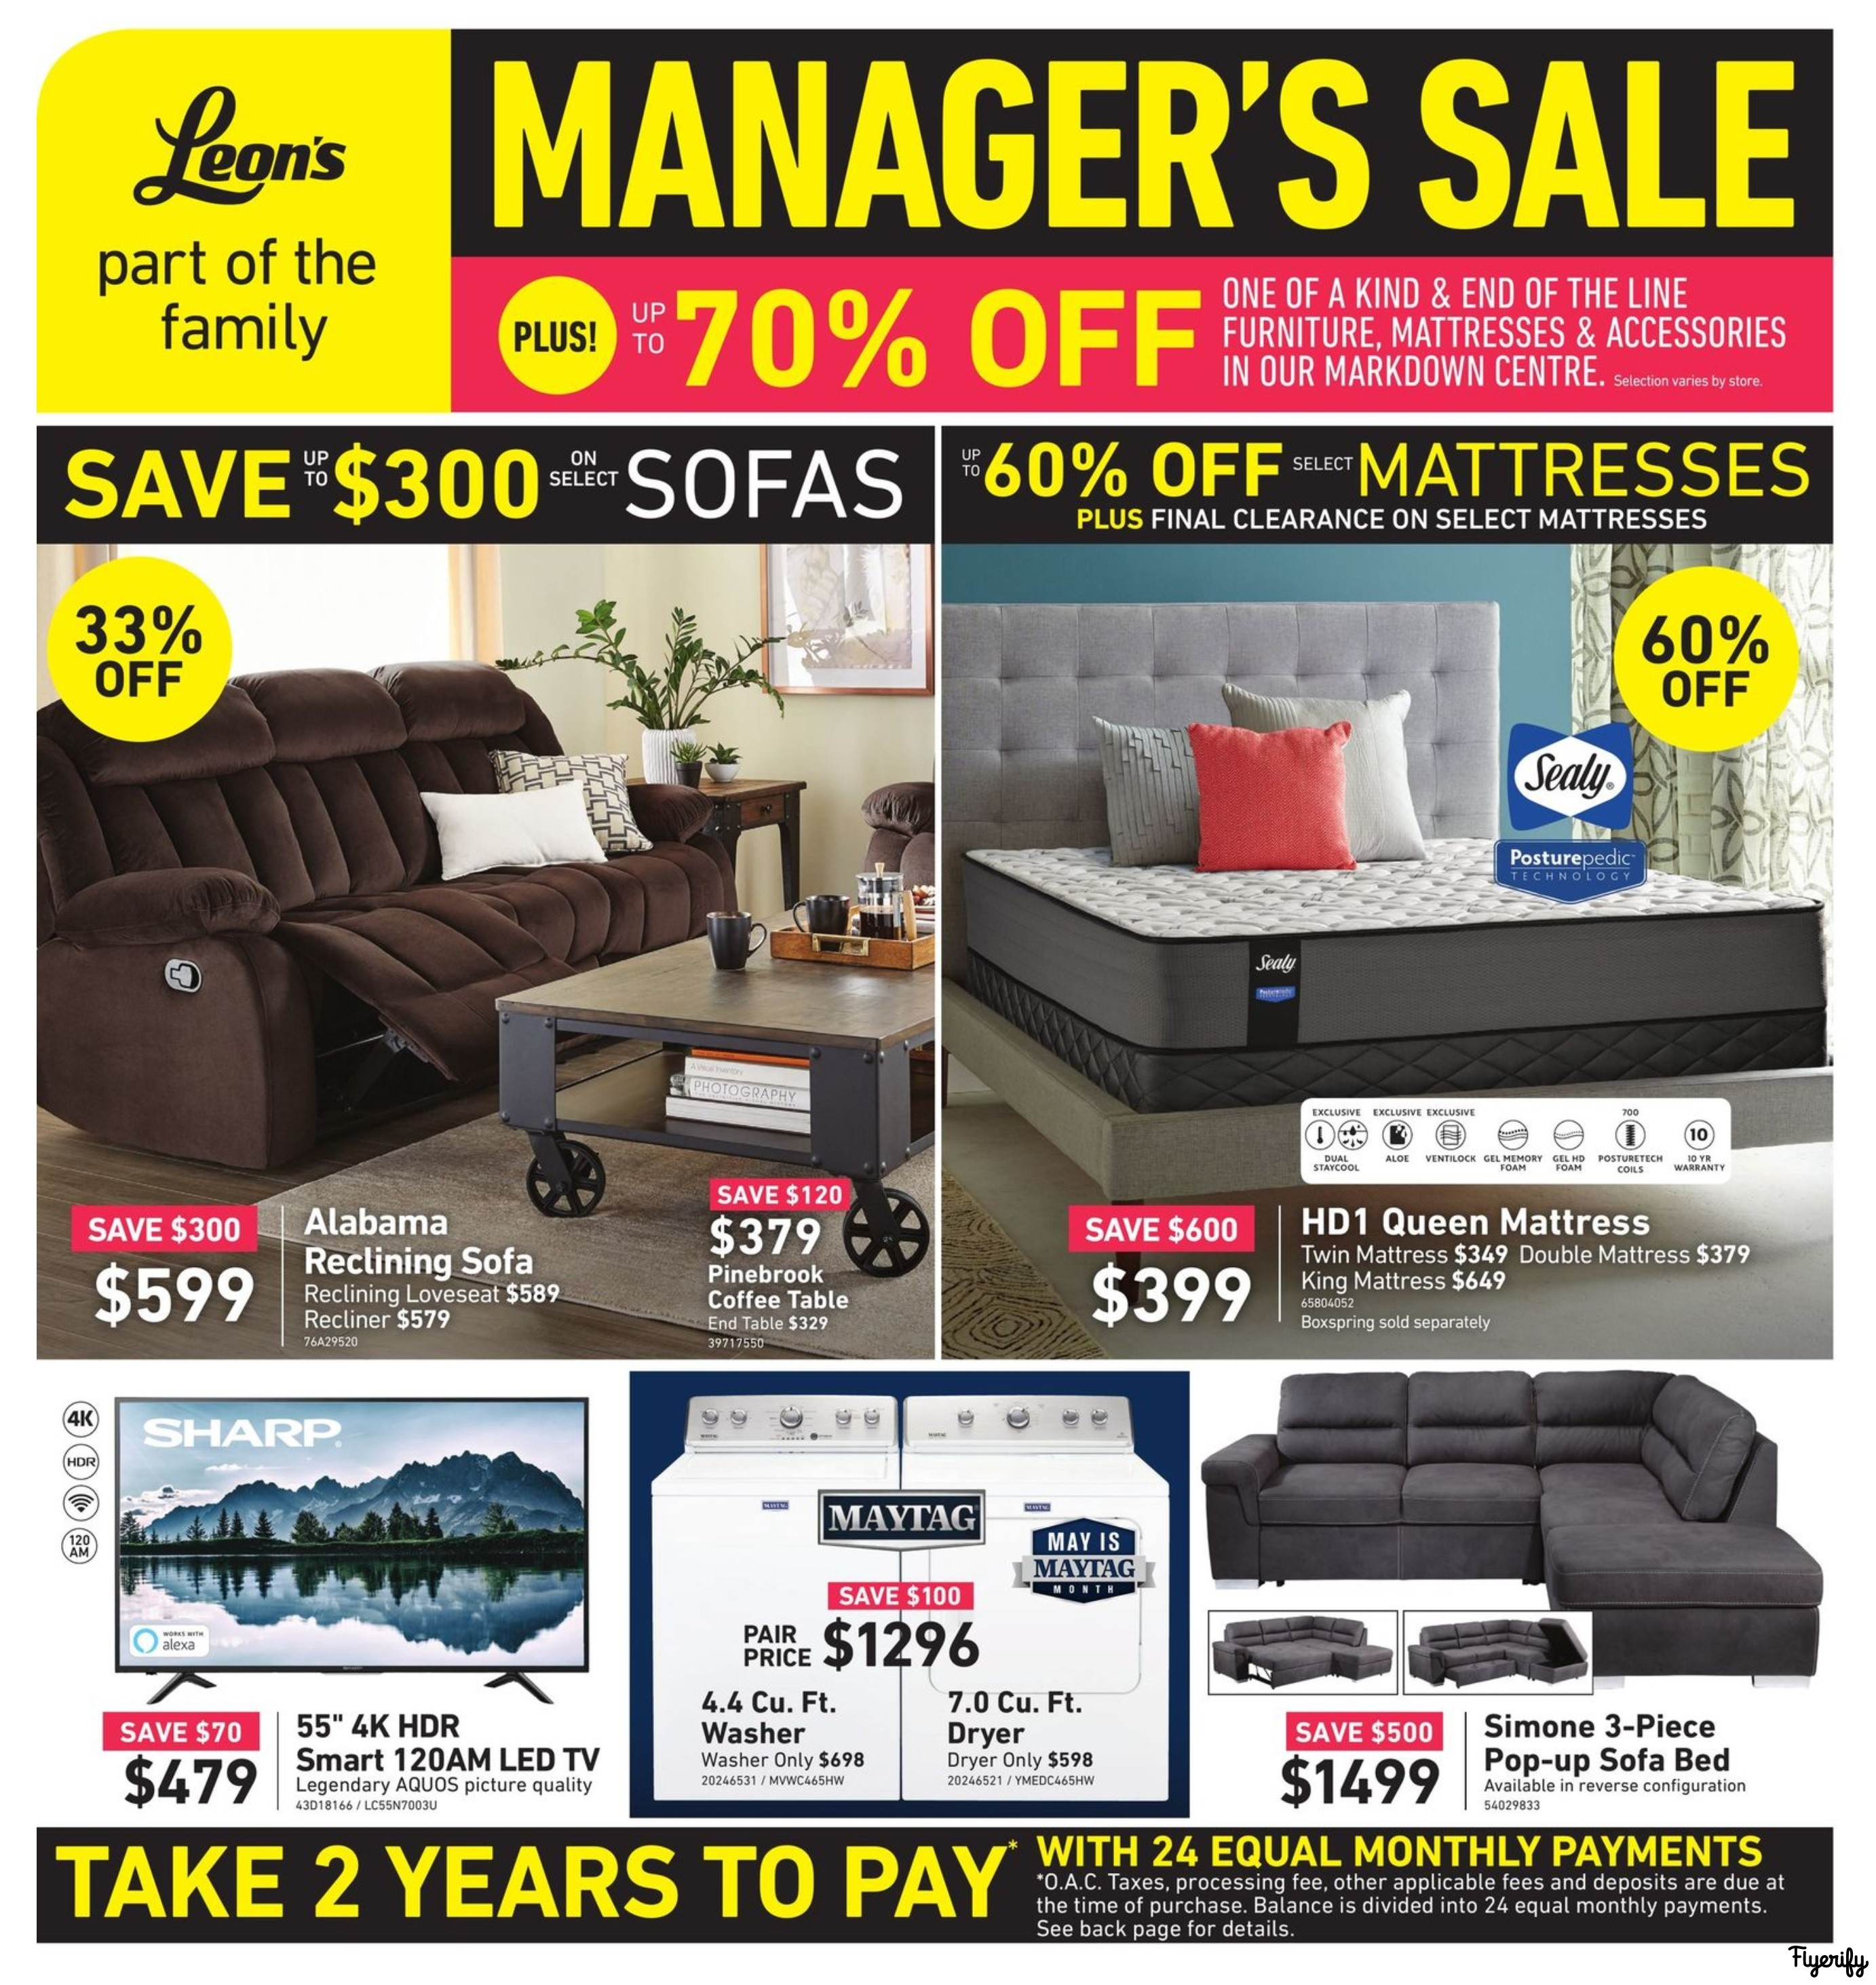 e465aabf2 Leon's Manager's Sale Flyer May 17 to 29